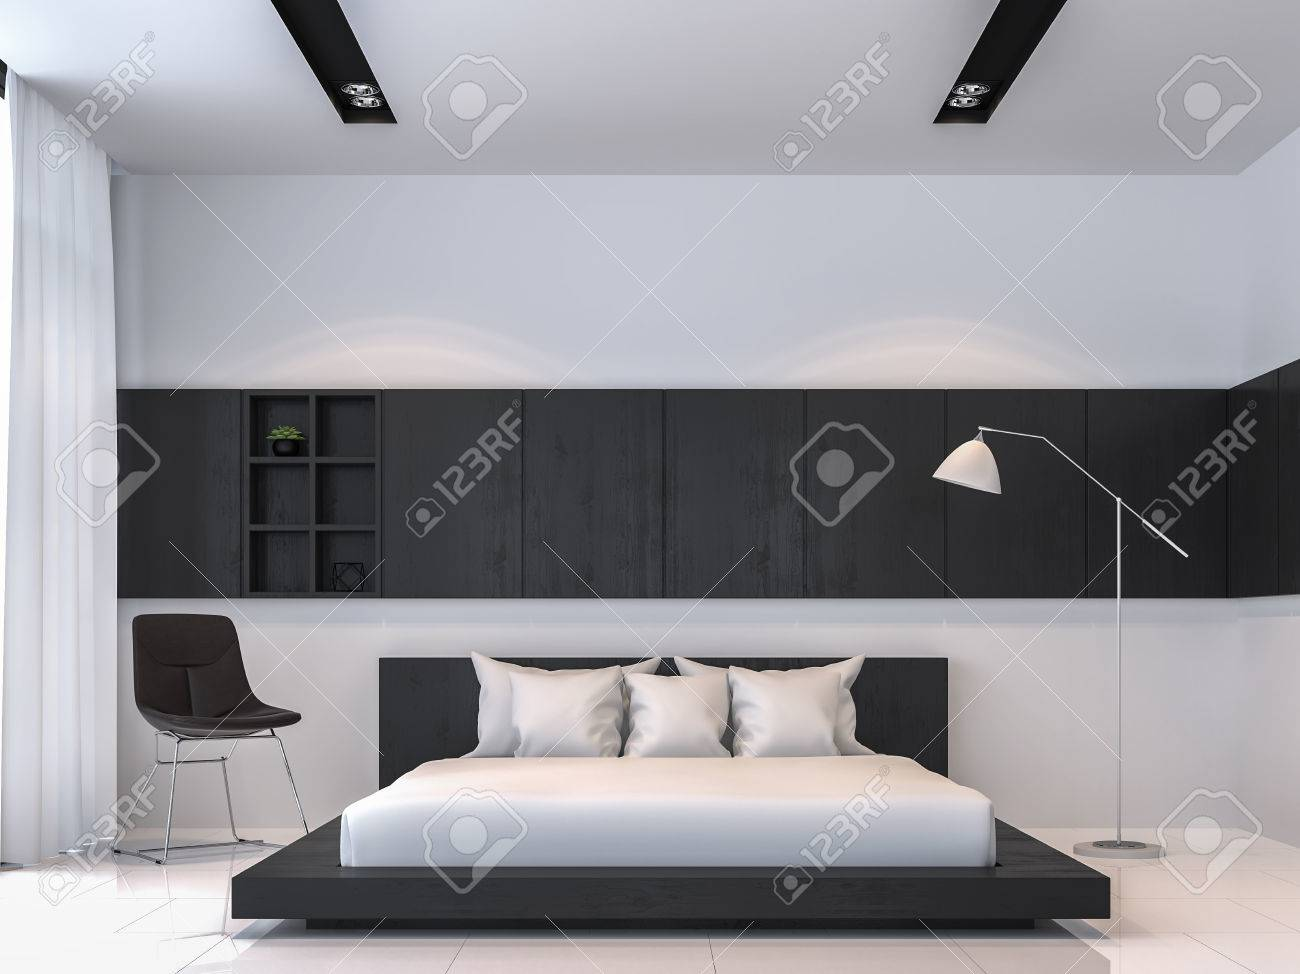 Modern Black And White Bedroom Interior Minimal Style 3d Rendering Stock Photo Picture And Royalty Free Image Image 83989212